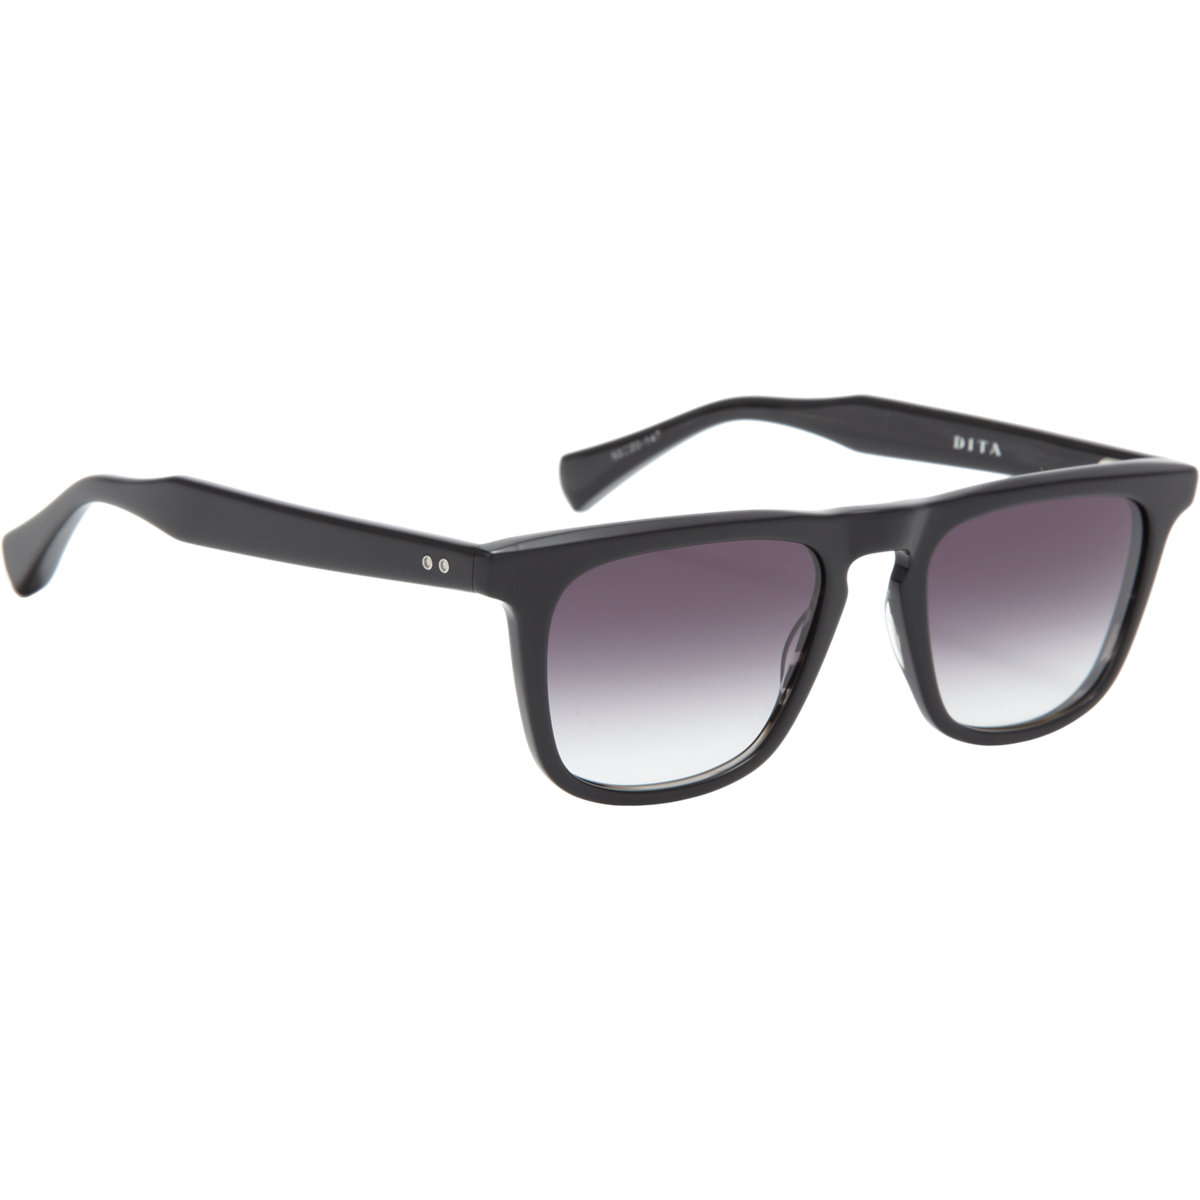 daaae6e8eb3 Lyst - DITA Bruzer Sunglasses in Black for Men